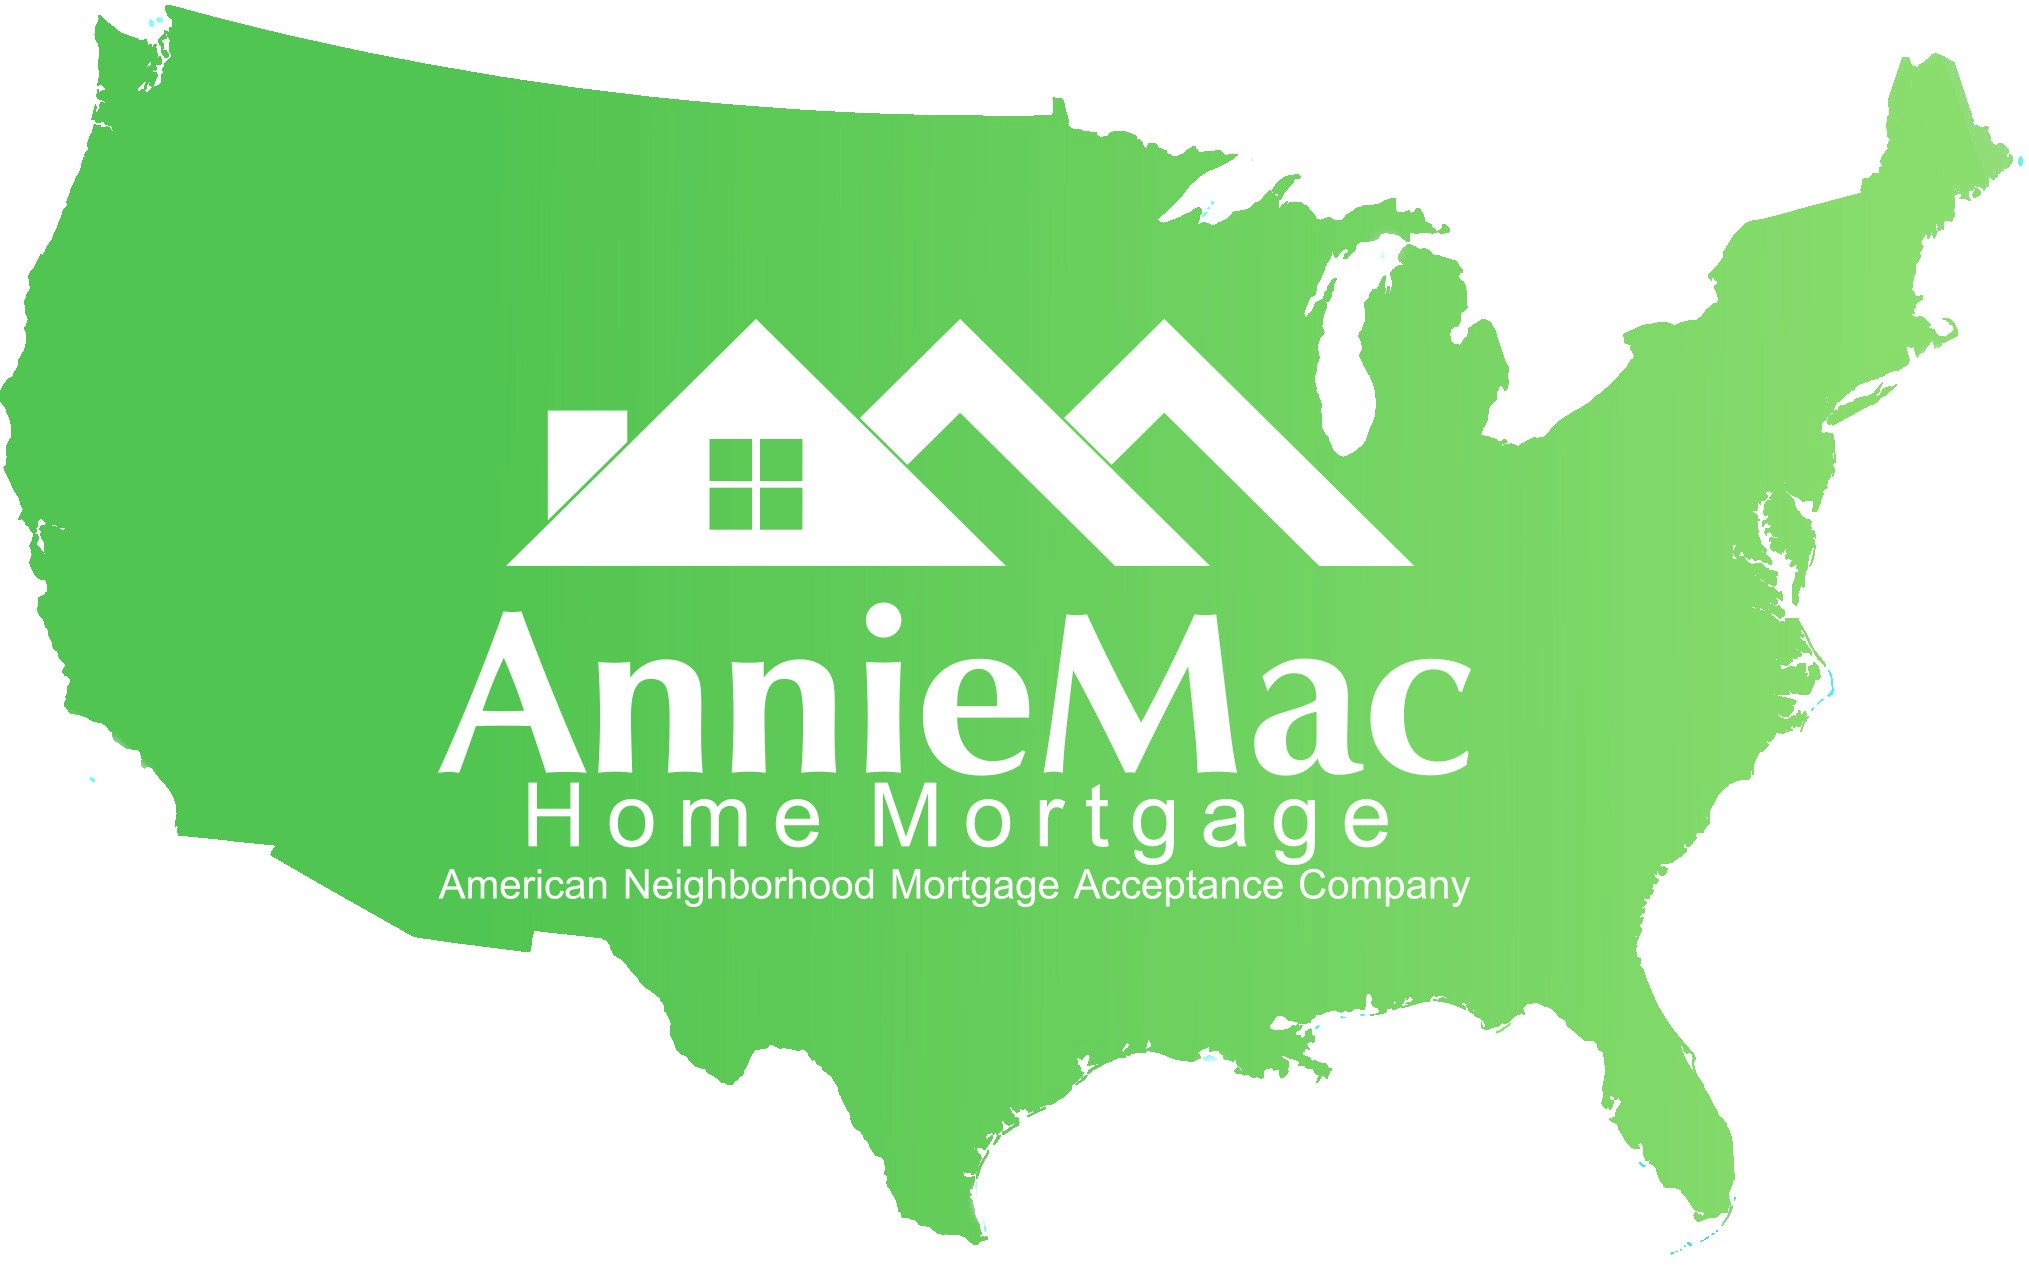 AnnieMac Home Mortgage - Cincinnati image 3